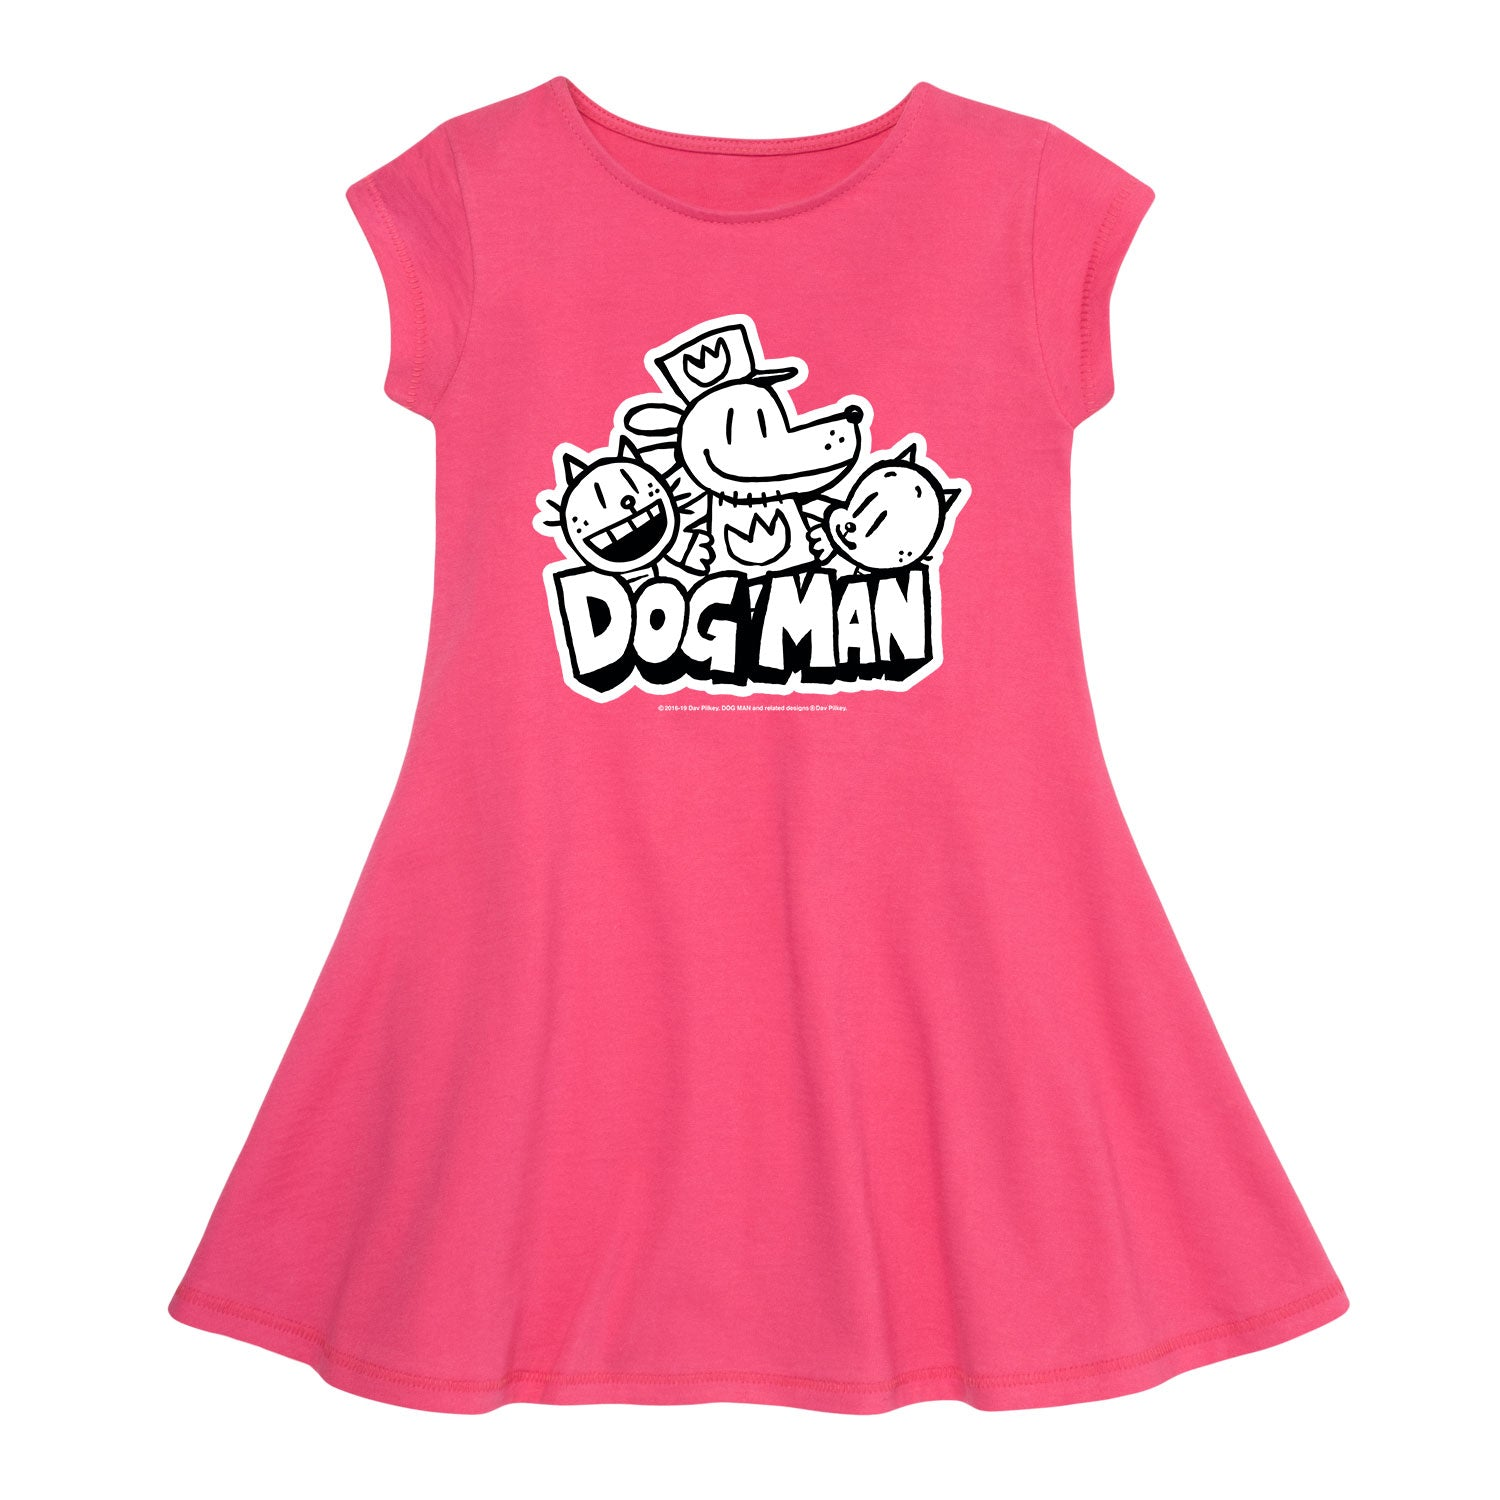 Dog Man Black and White - Youth Fit And Flare Dress